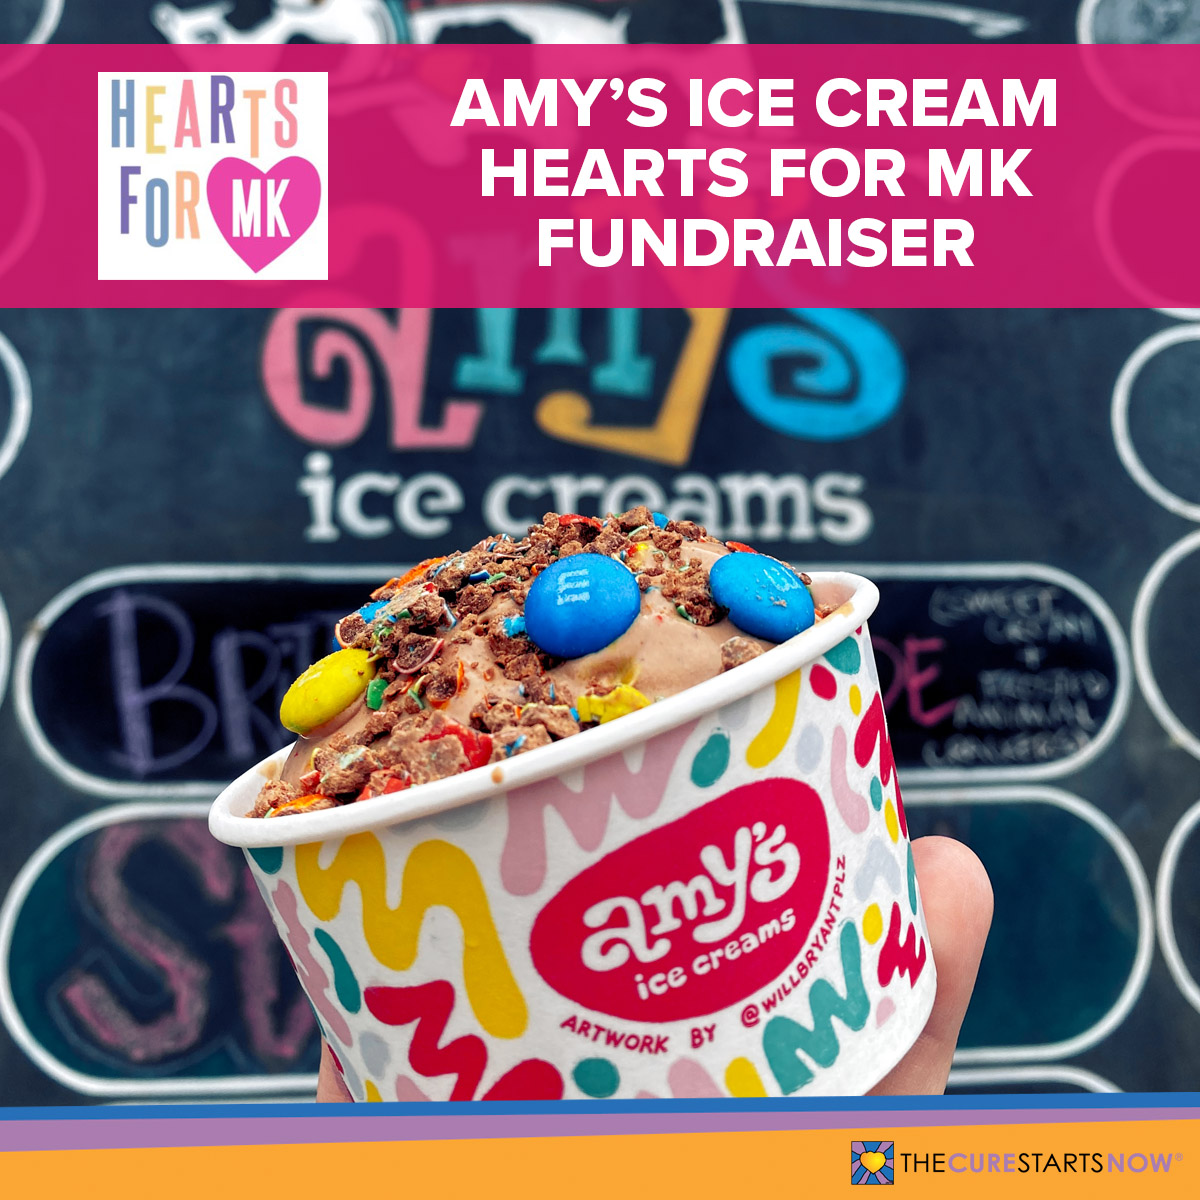 Amy's Ice Cream Hearts for MK Fundraiser